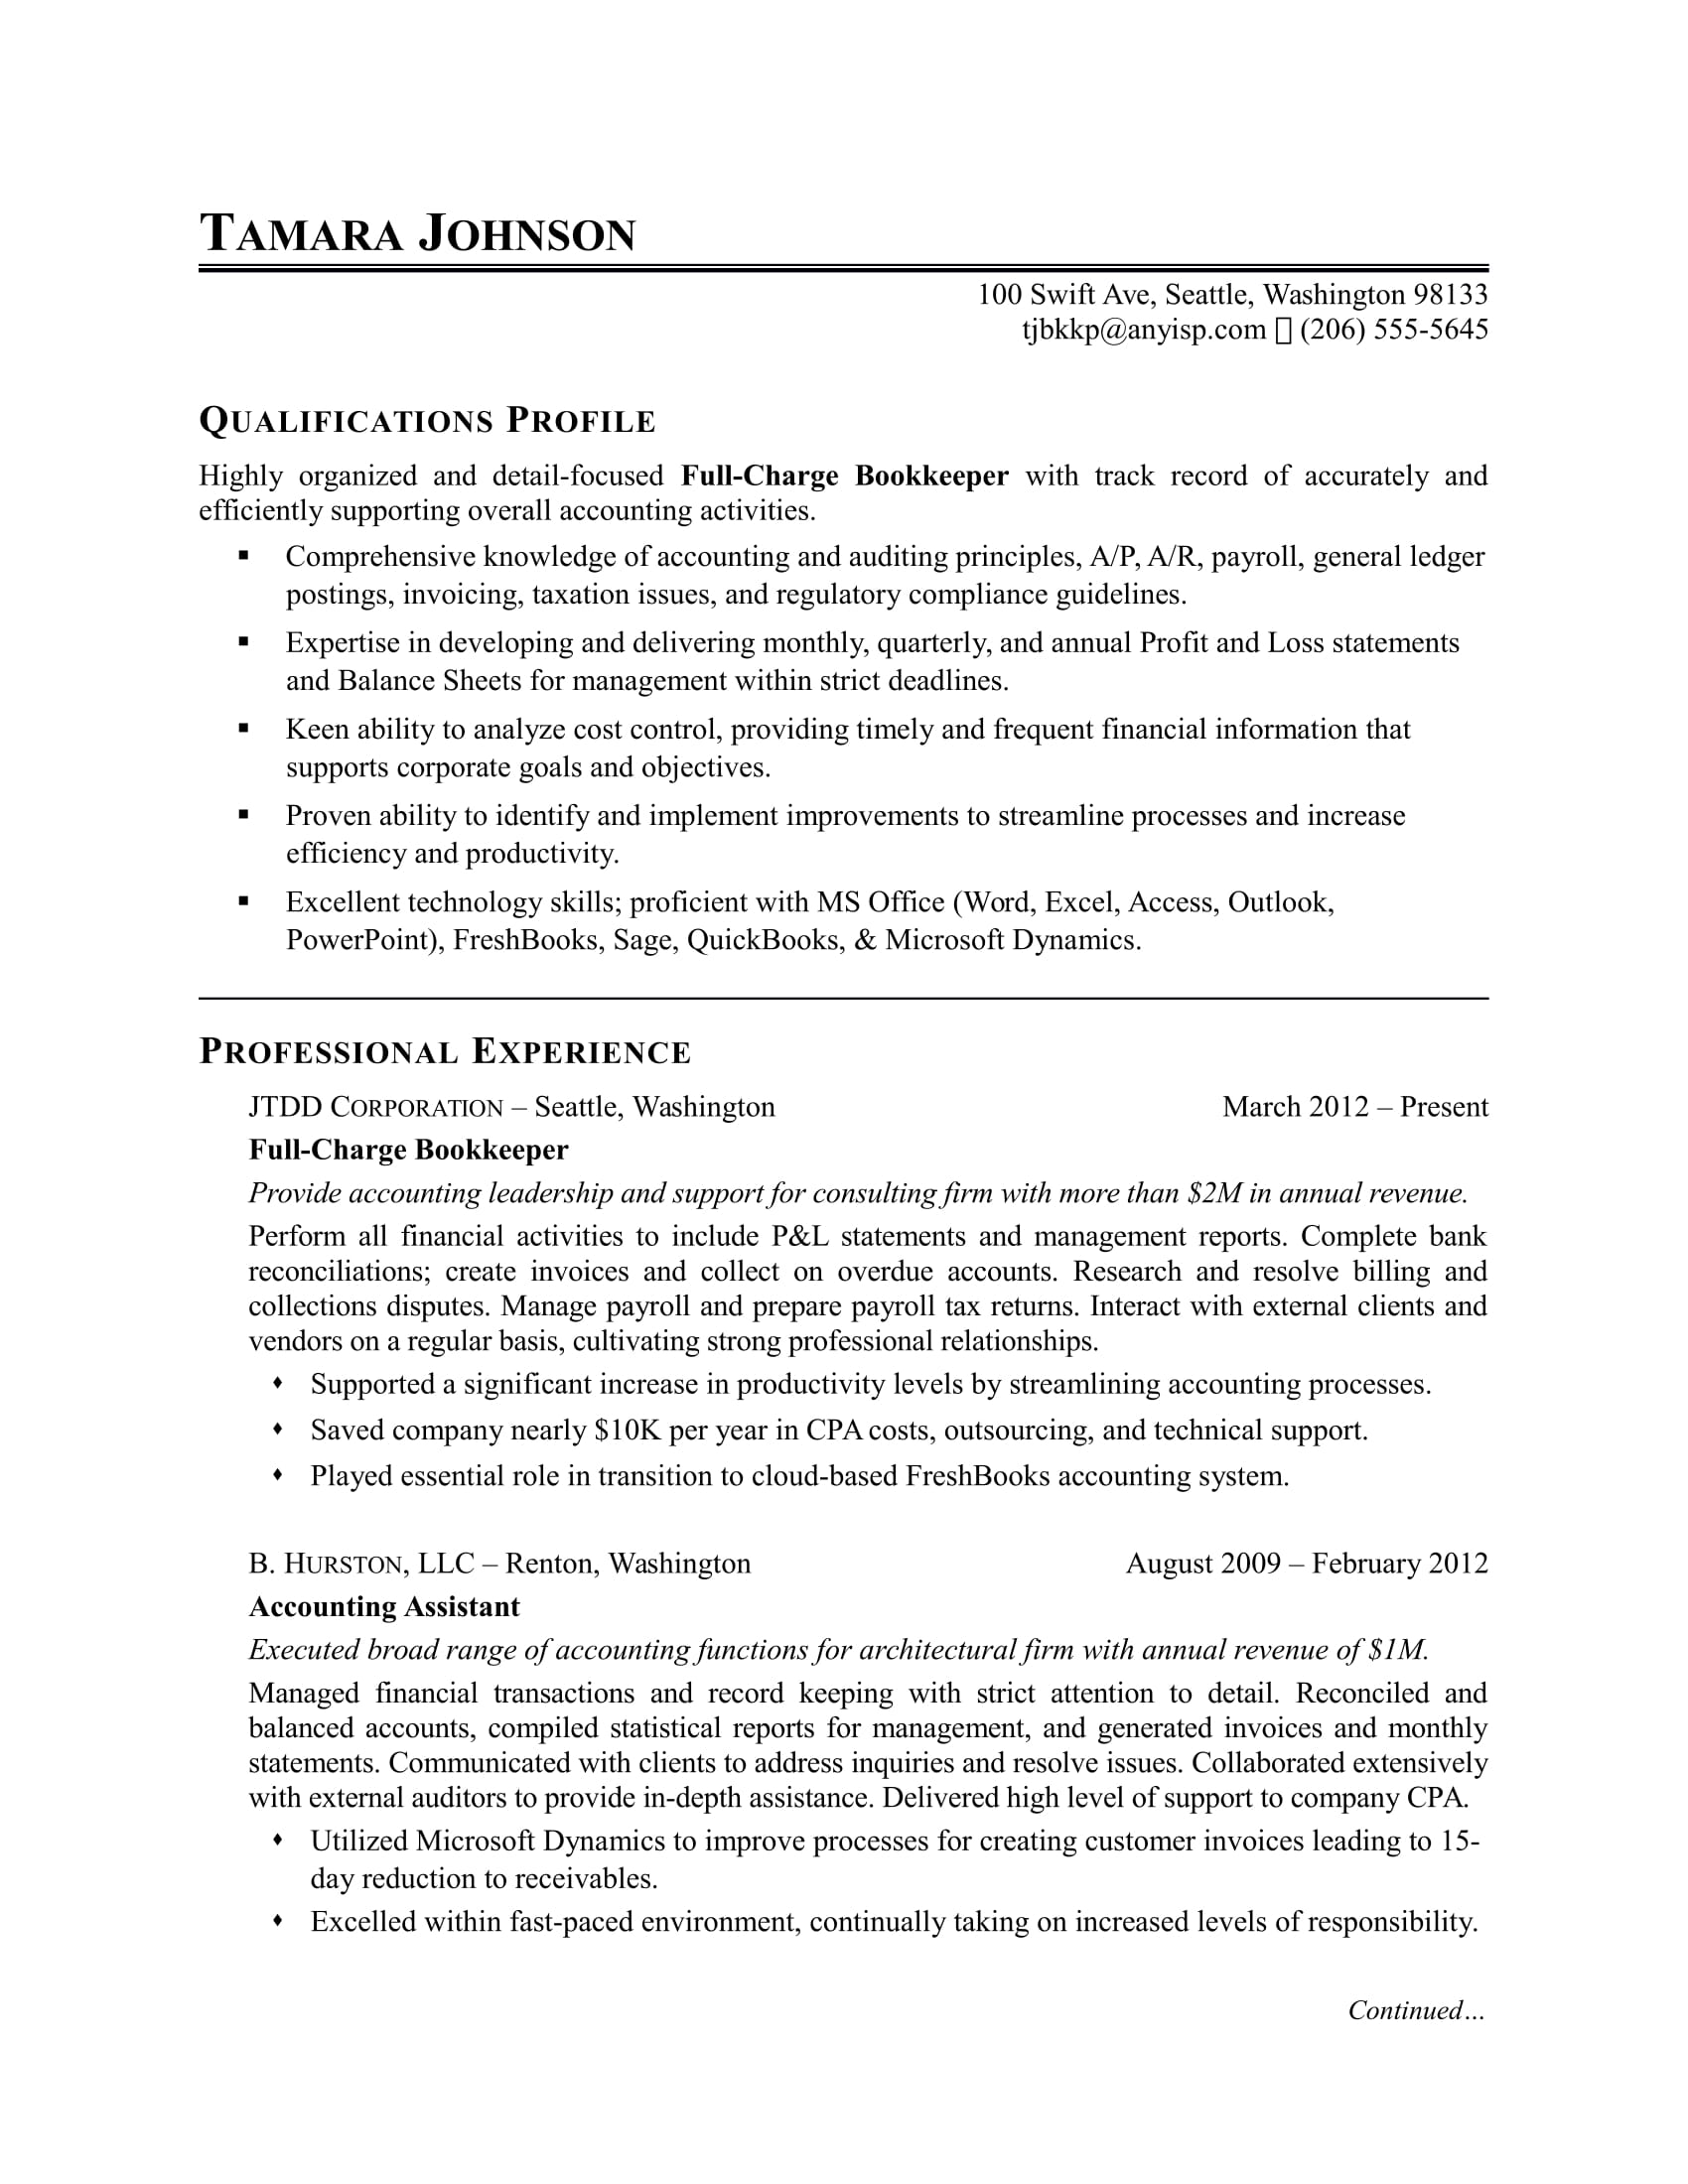 Elegant Sample Resume For A Bookkeeper Regard To Bookkeeping Resume